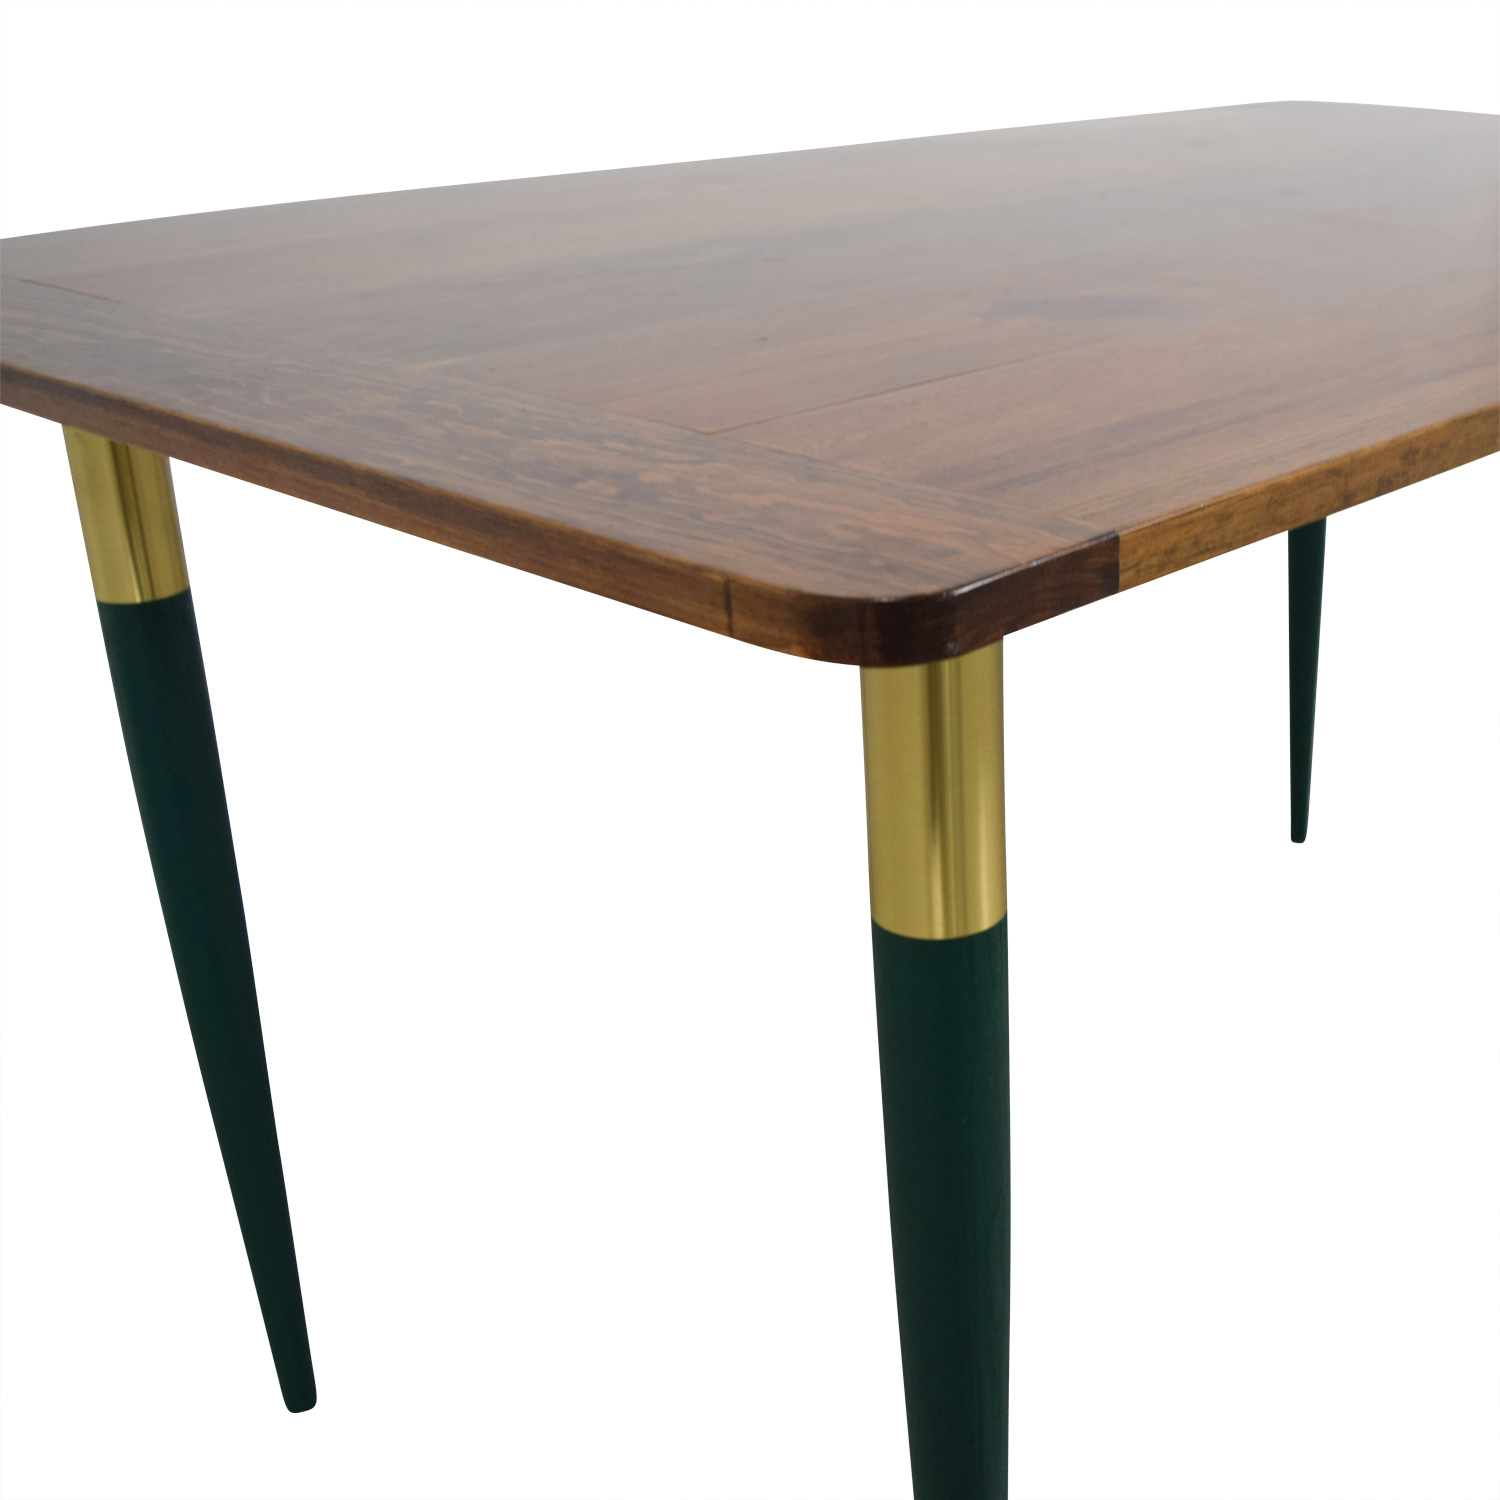 Custom Rustic Wood with Green Leg Table / Tables